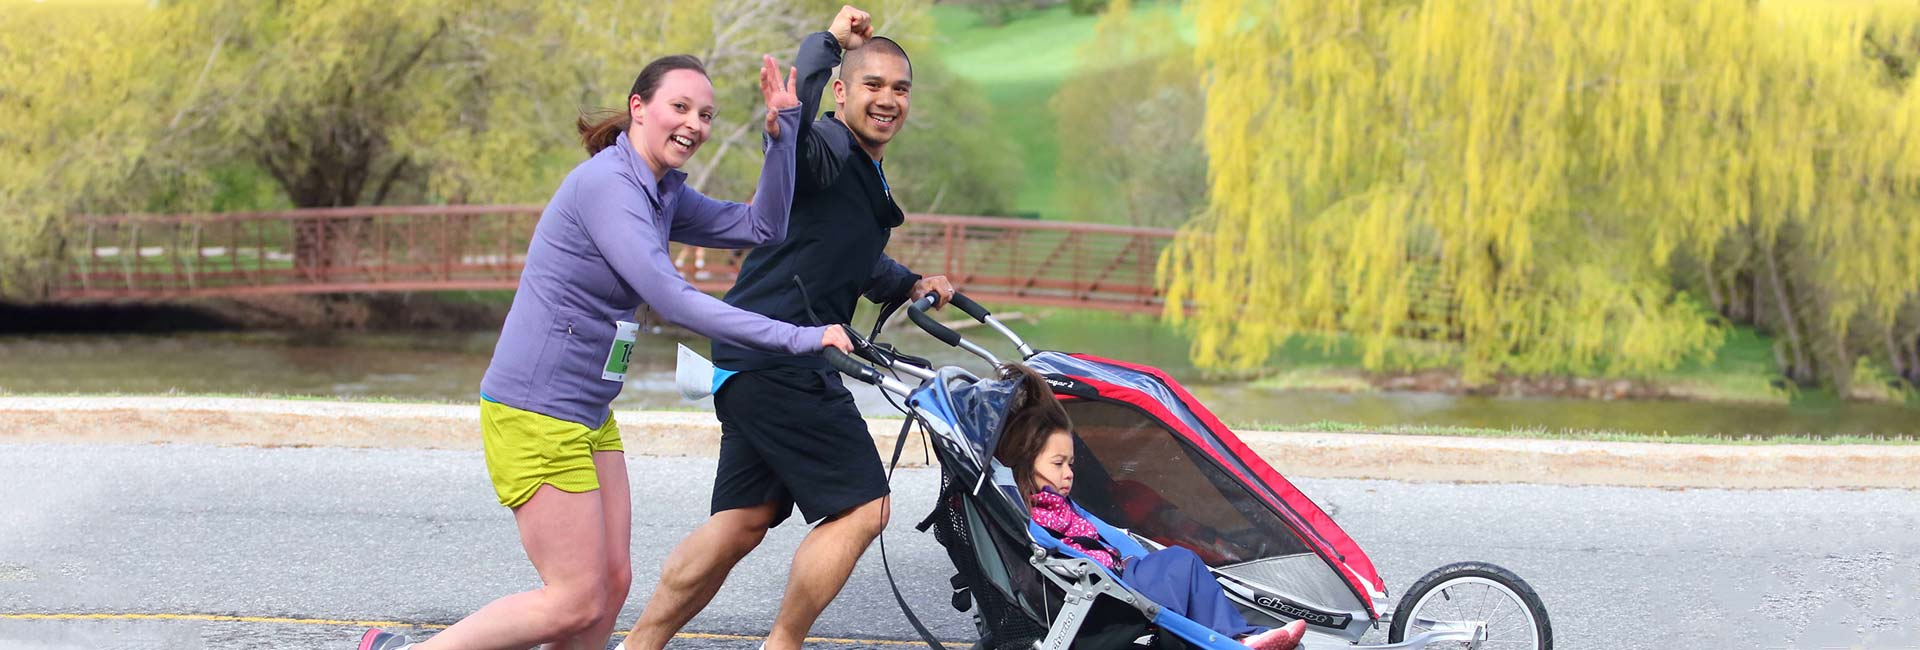 Family jogging with child stroller